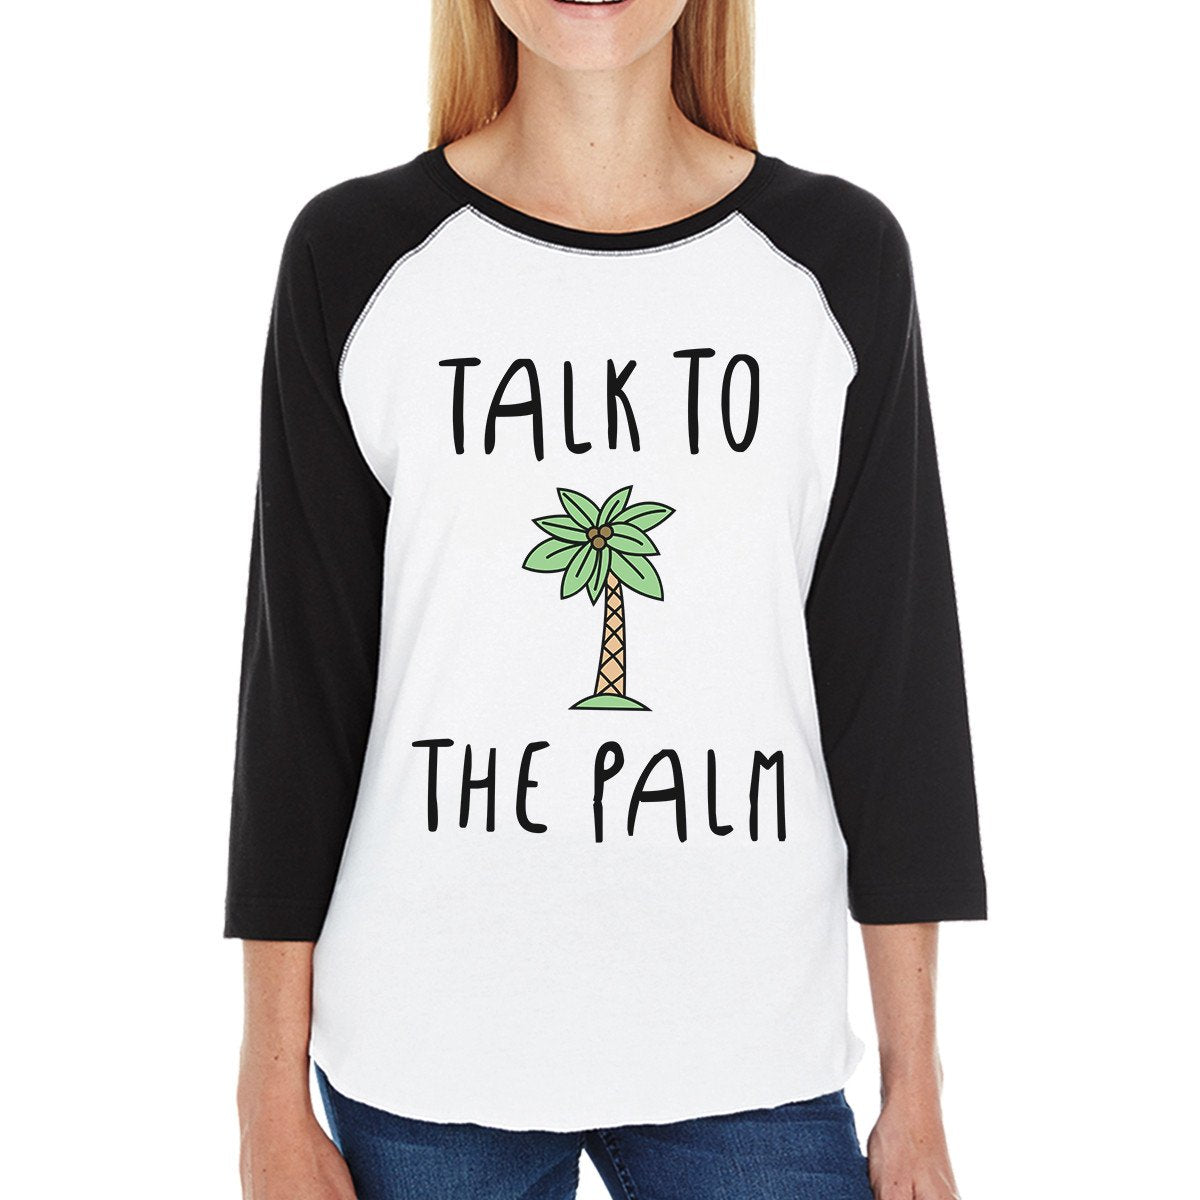 Talk To The Palm Cute Graphic Baseball Tee For Women Summer Gifts